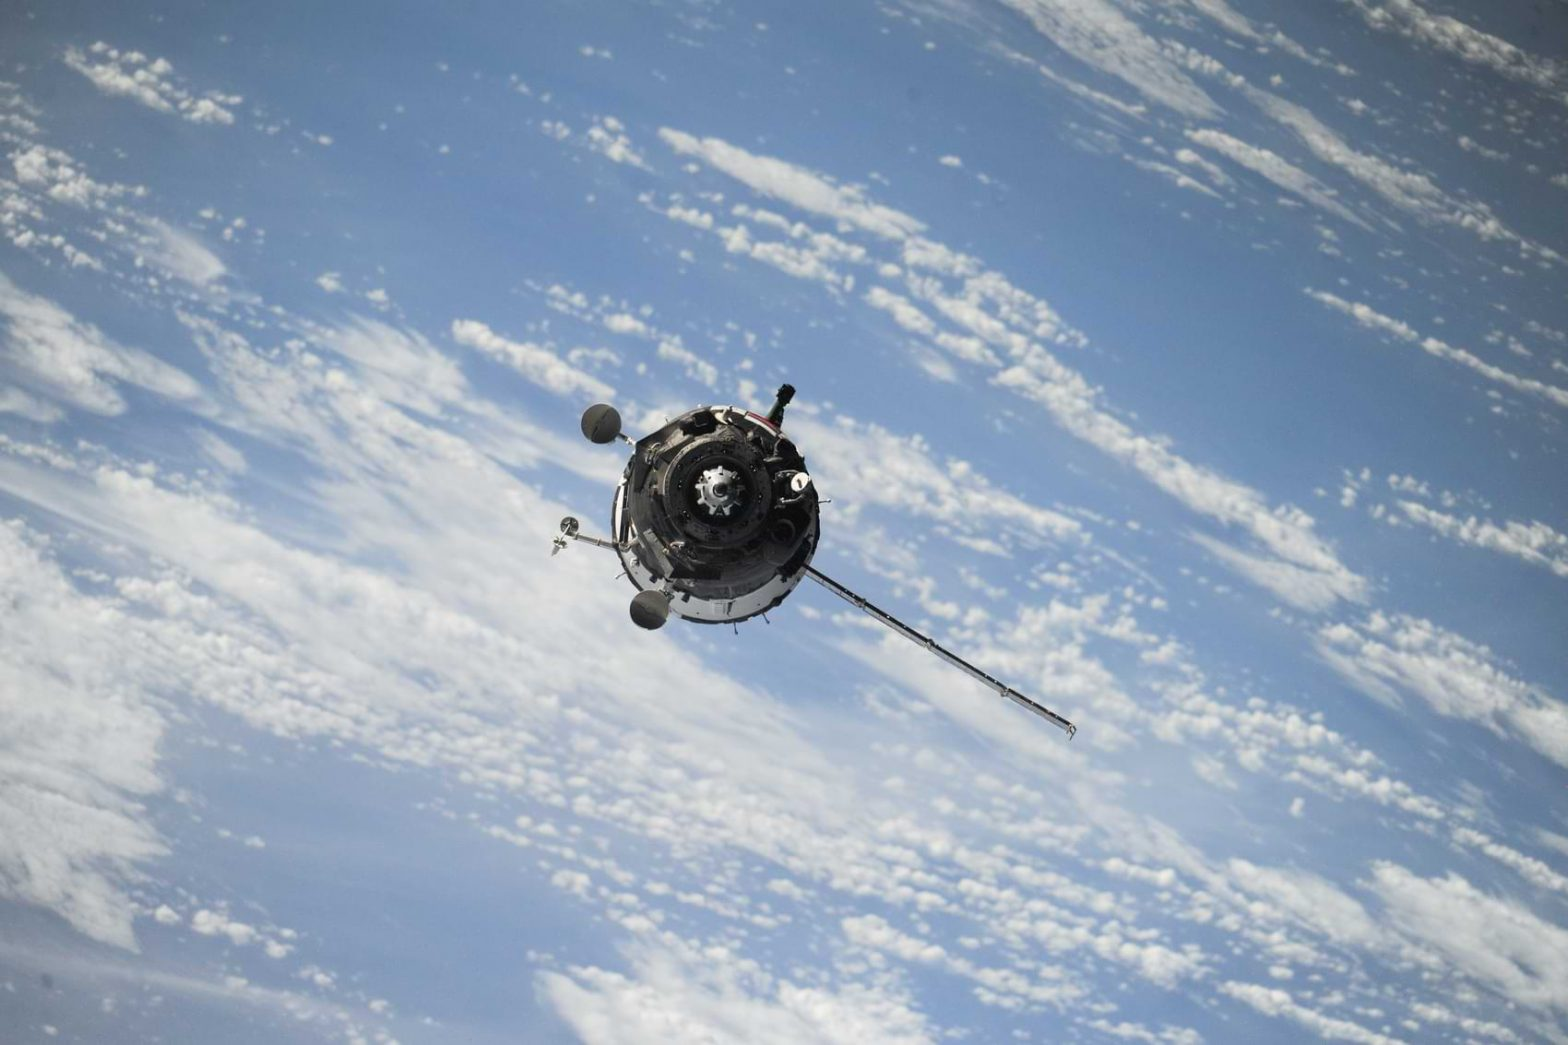 A satellite orbits the Earth, providing internet access and information to the people down below.